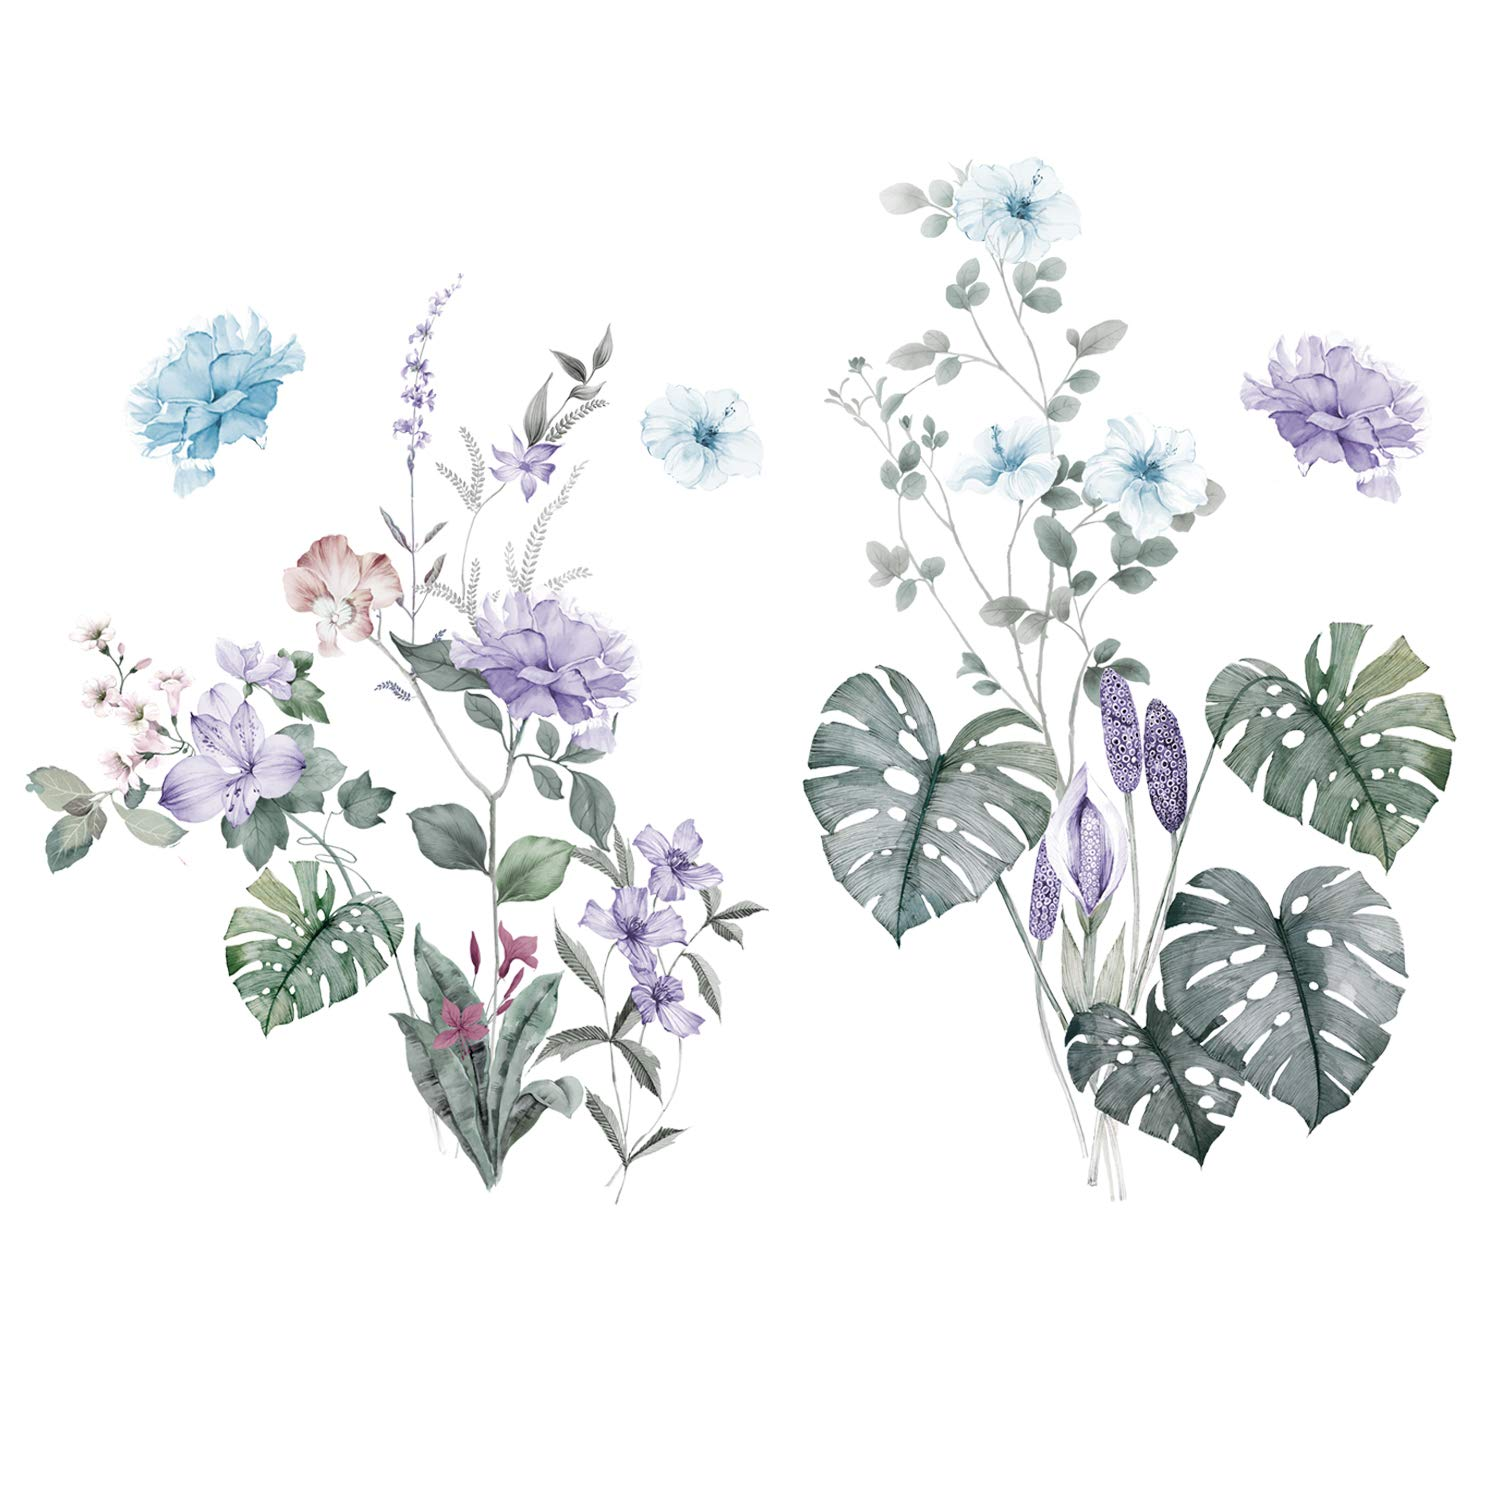 3D Gaint Green Leaf and Multicolor Flower Wall Decals Remvable Nursey Floral Purple Flowers Wall Stickers Decor Peel and Stick Art for Girls Bedroom Living Room Bathroom Wall Decoration (Colorful)